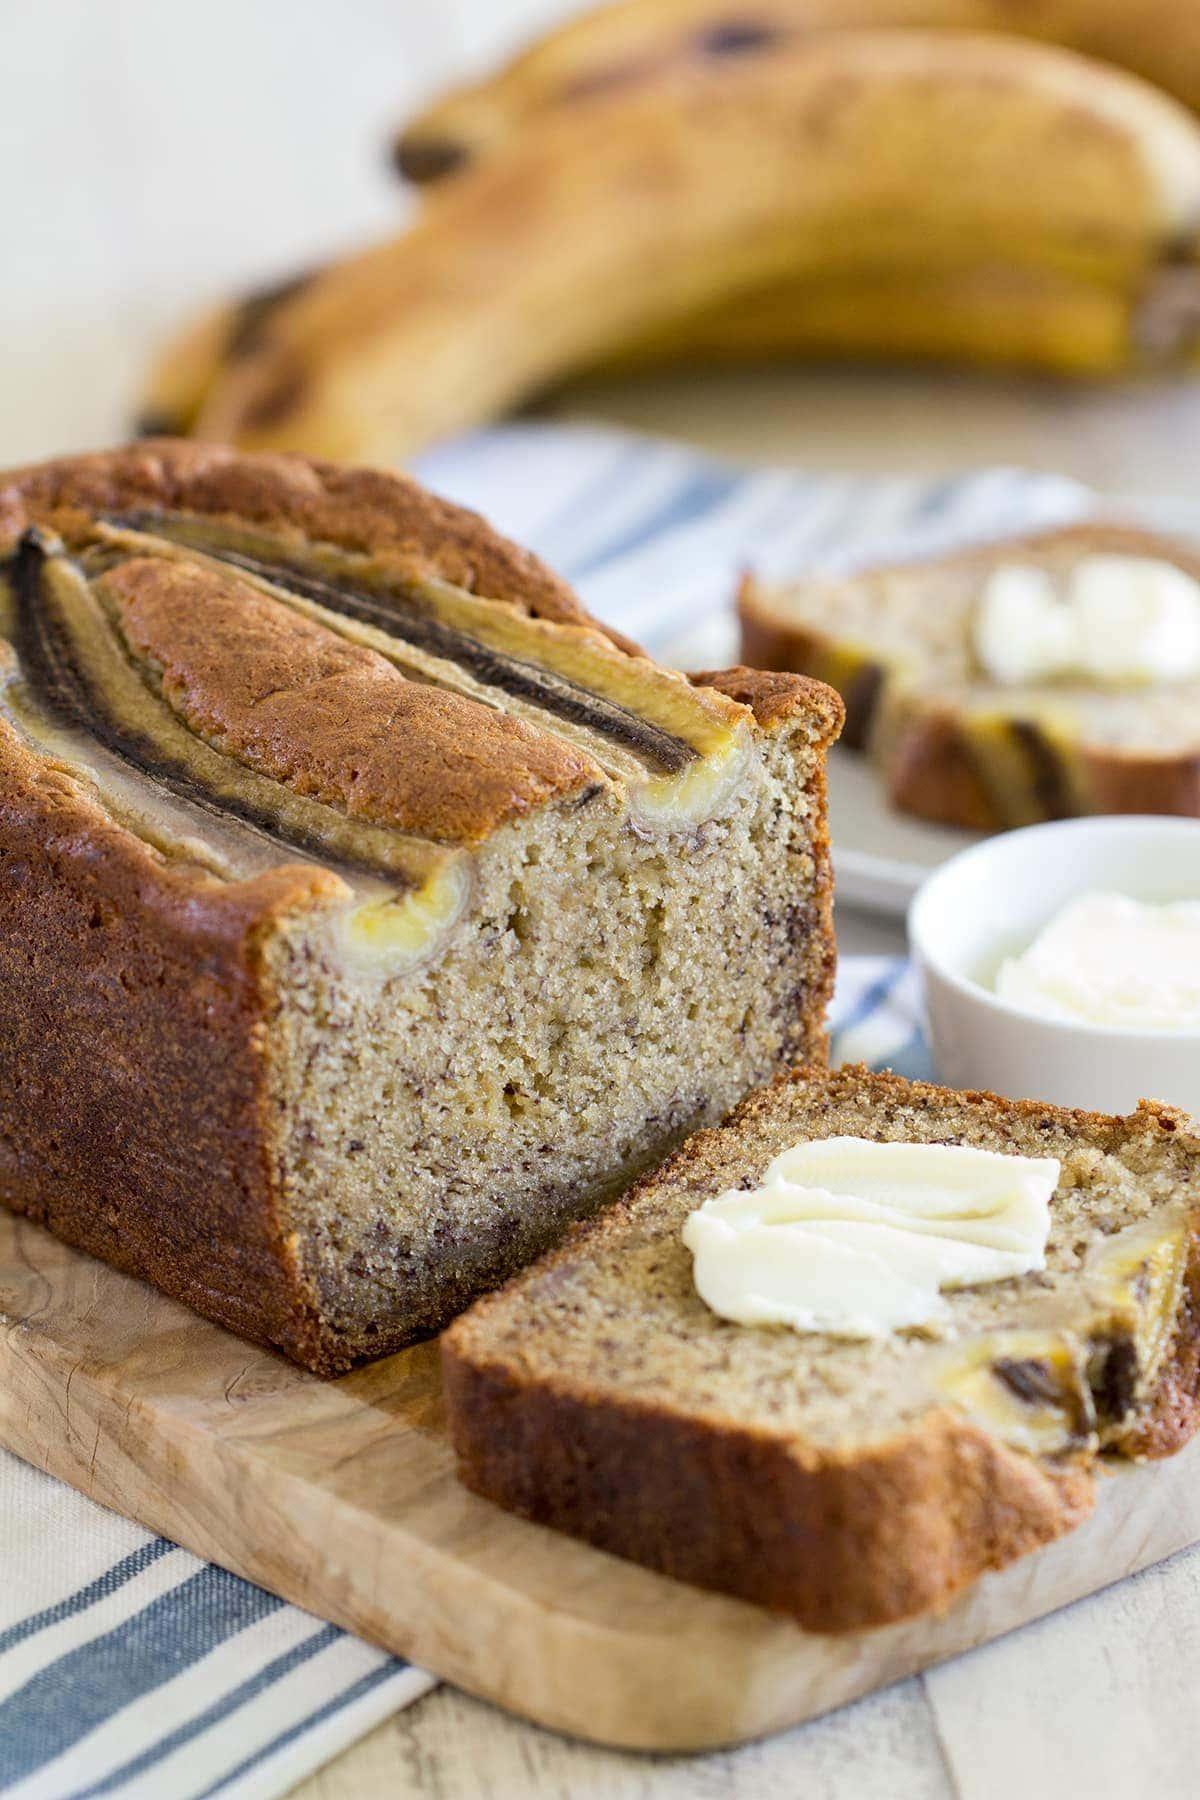 This recipe is for the very best sour cream banana bread that is very moist, flavorful and delicious! The pefect classic banana bread.